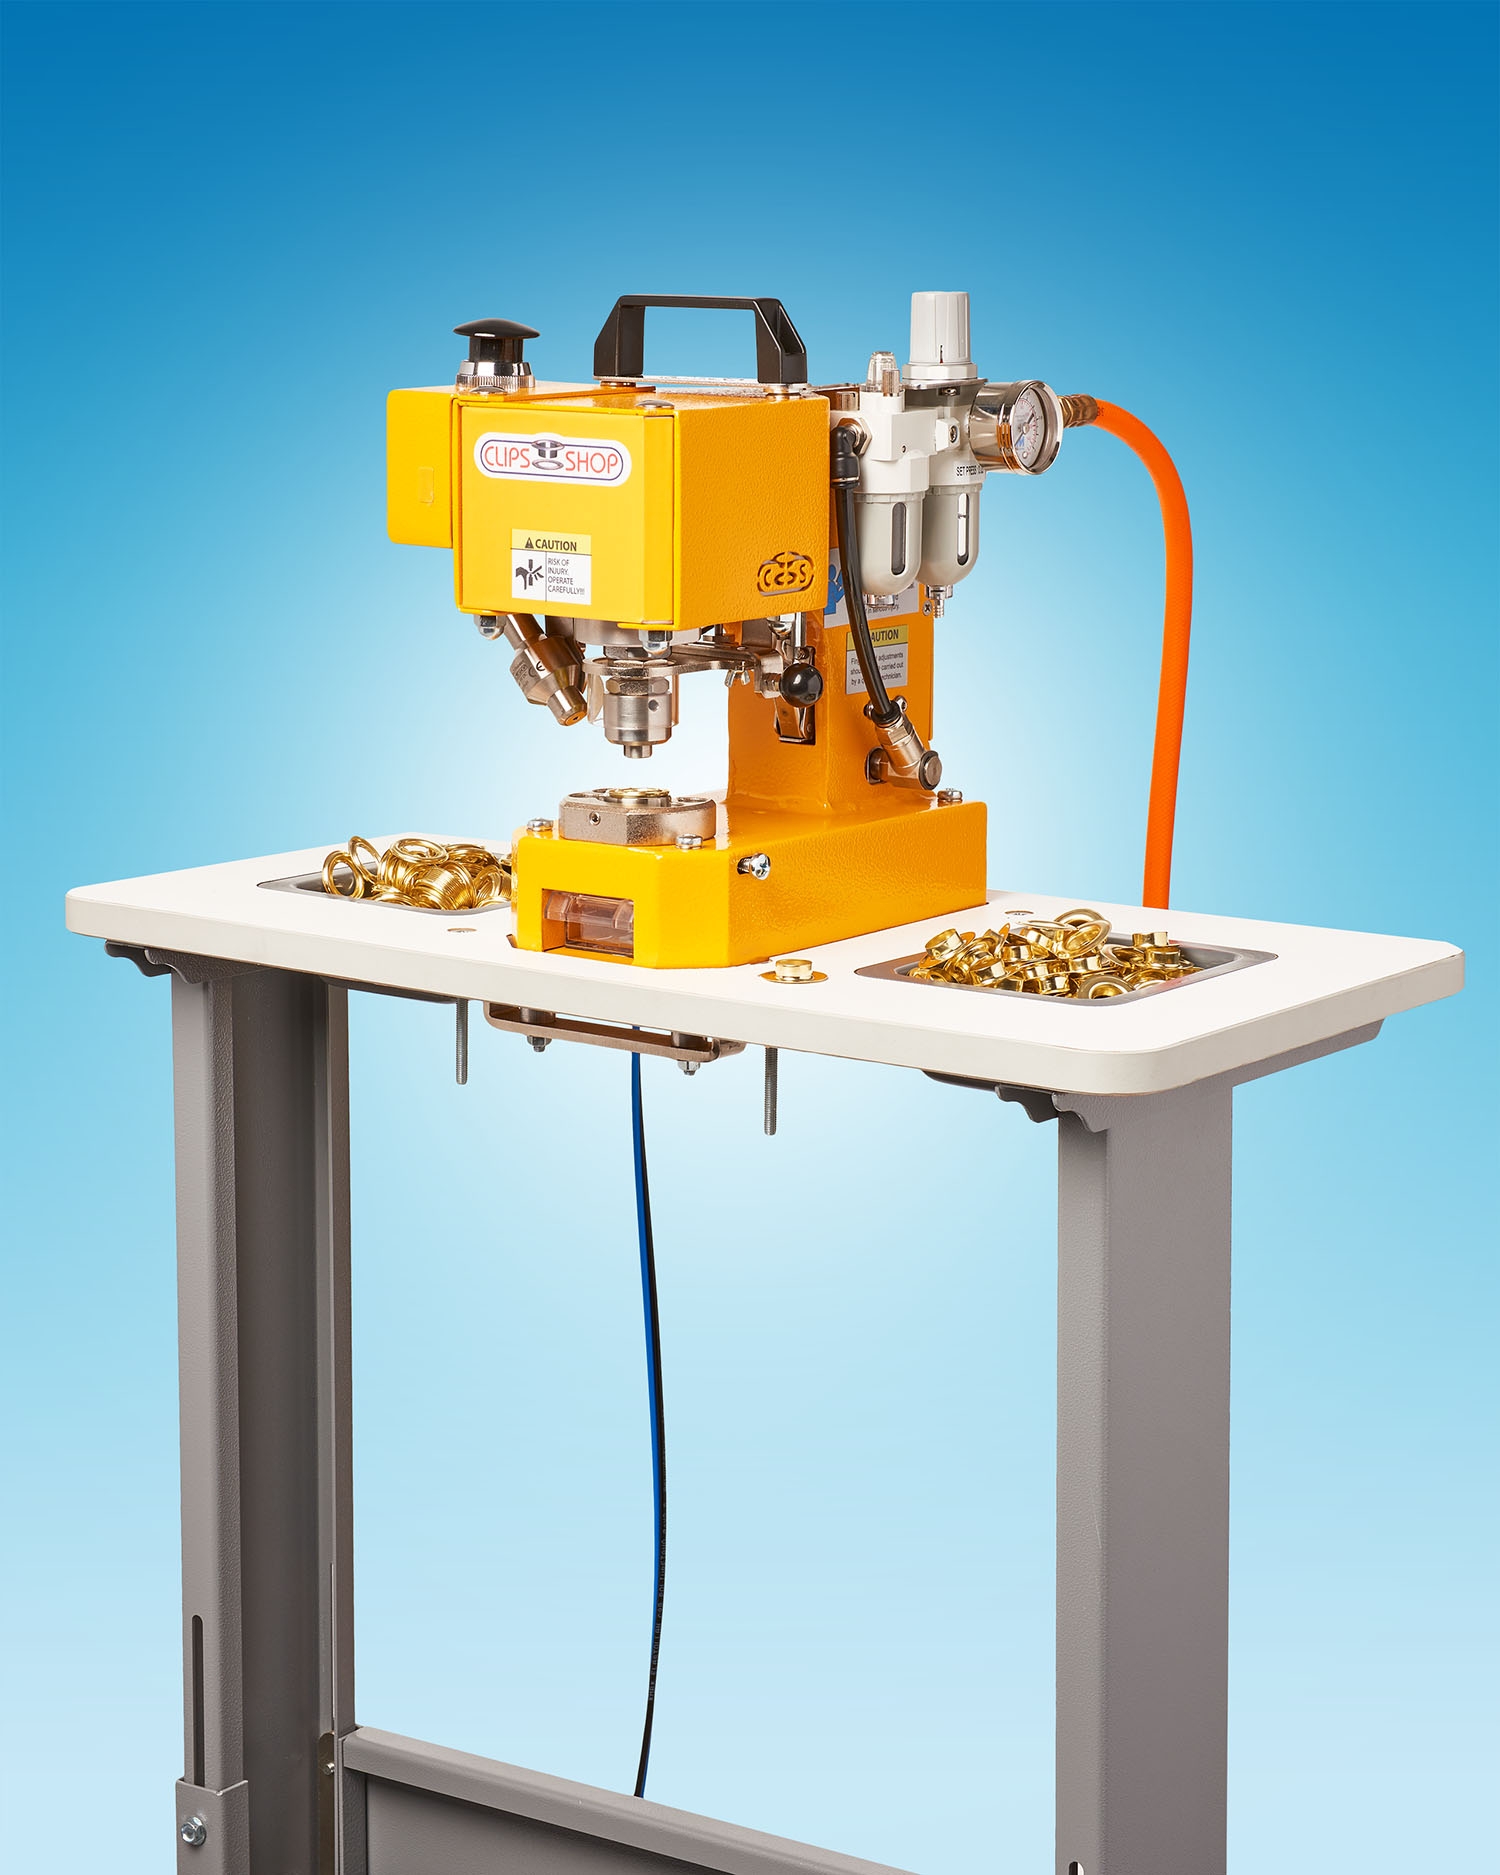 PORTABLE PNEUMATIC GROMMET ATTACHING MACHINE GETS A NEW ADJUSTABLE WORK TABLE